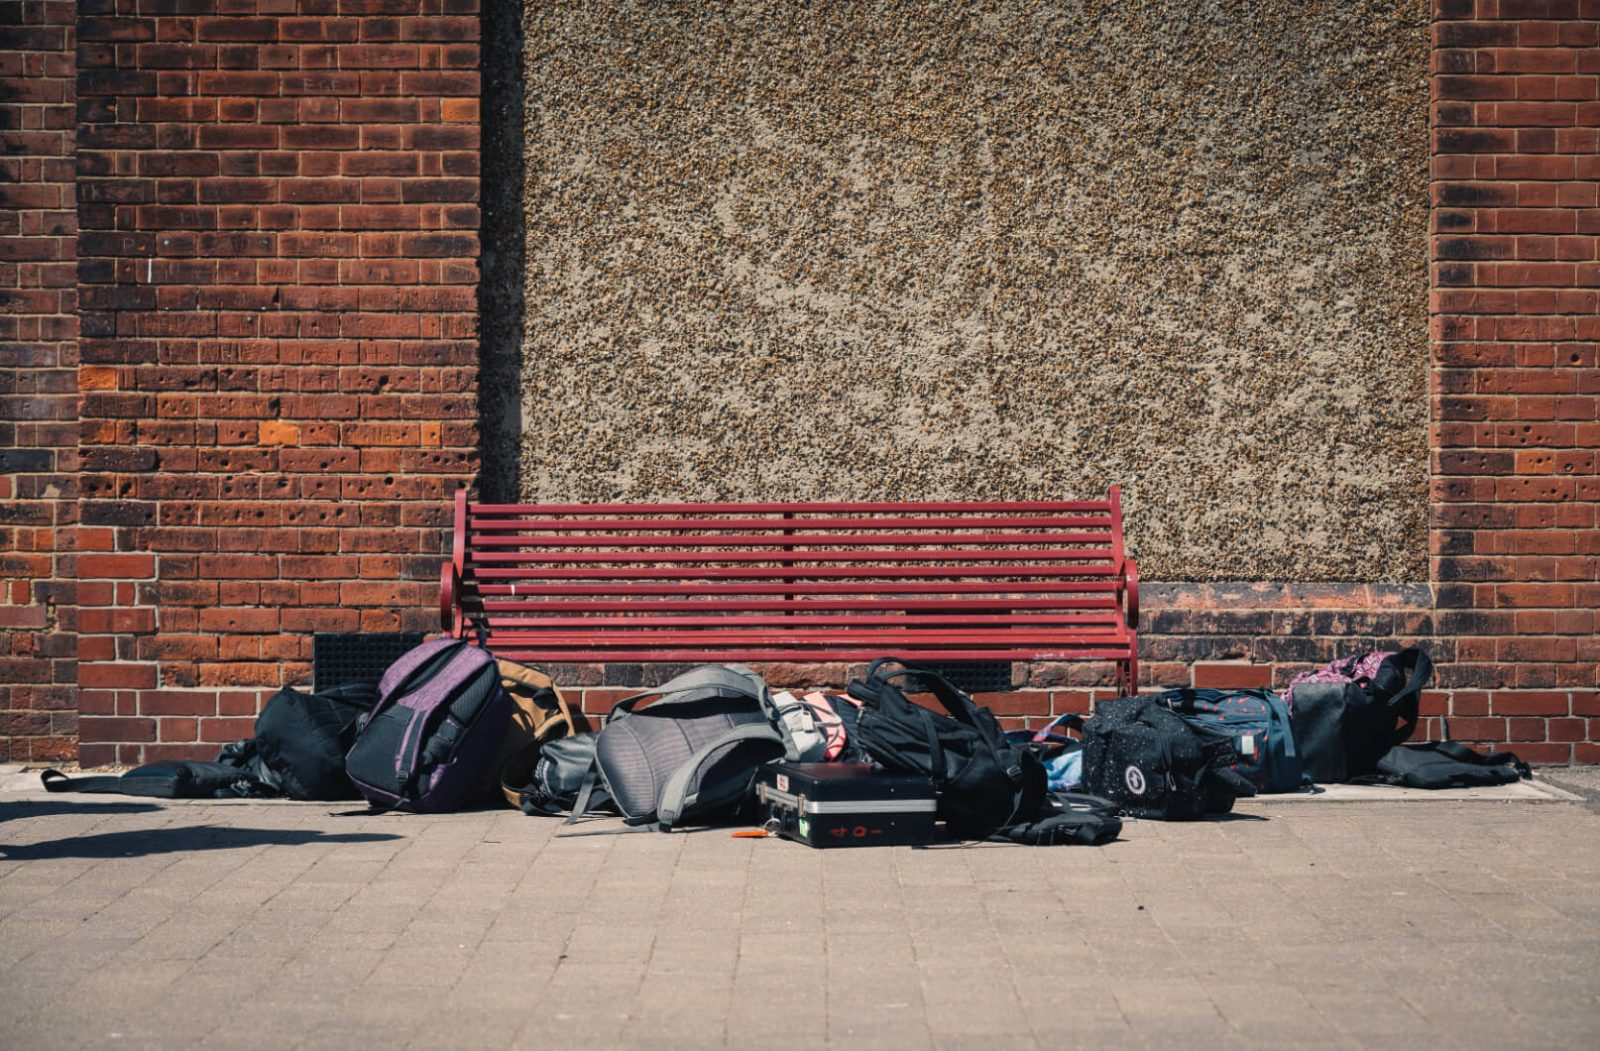 Image of schoolbags left by a bench in a school playground